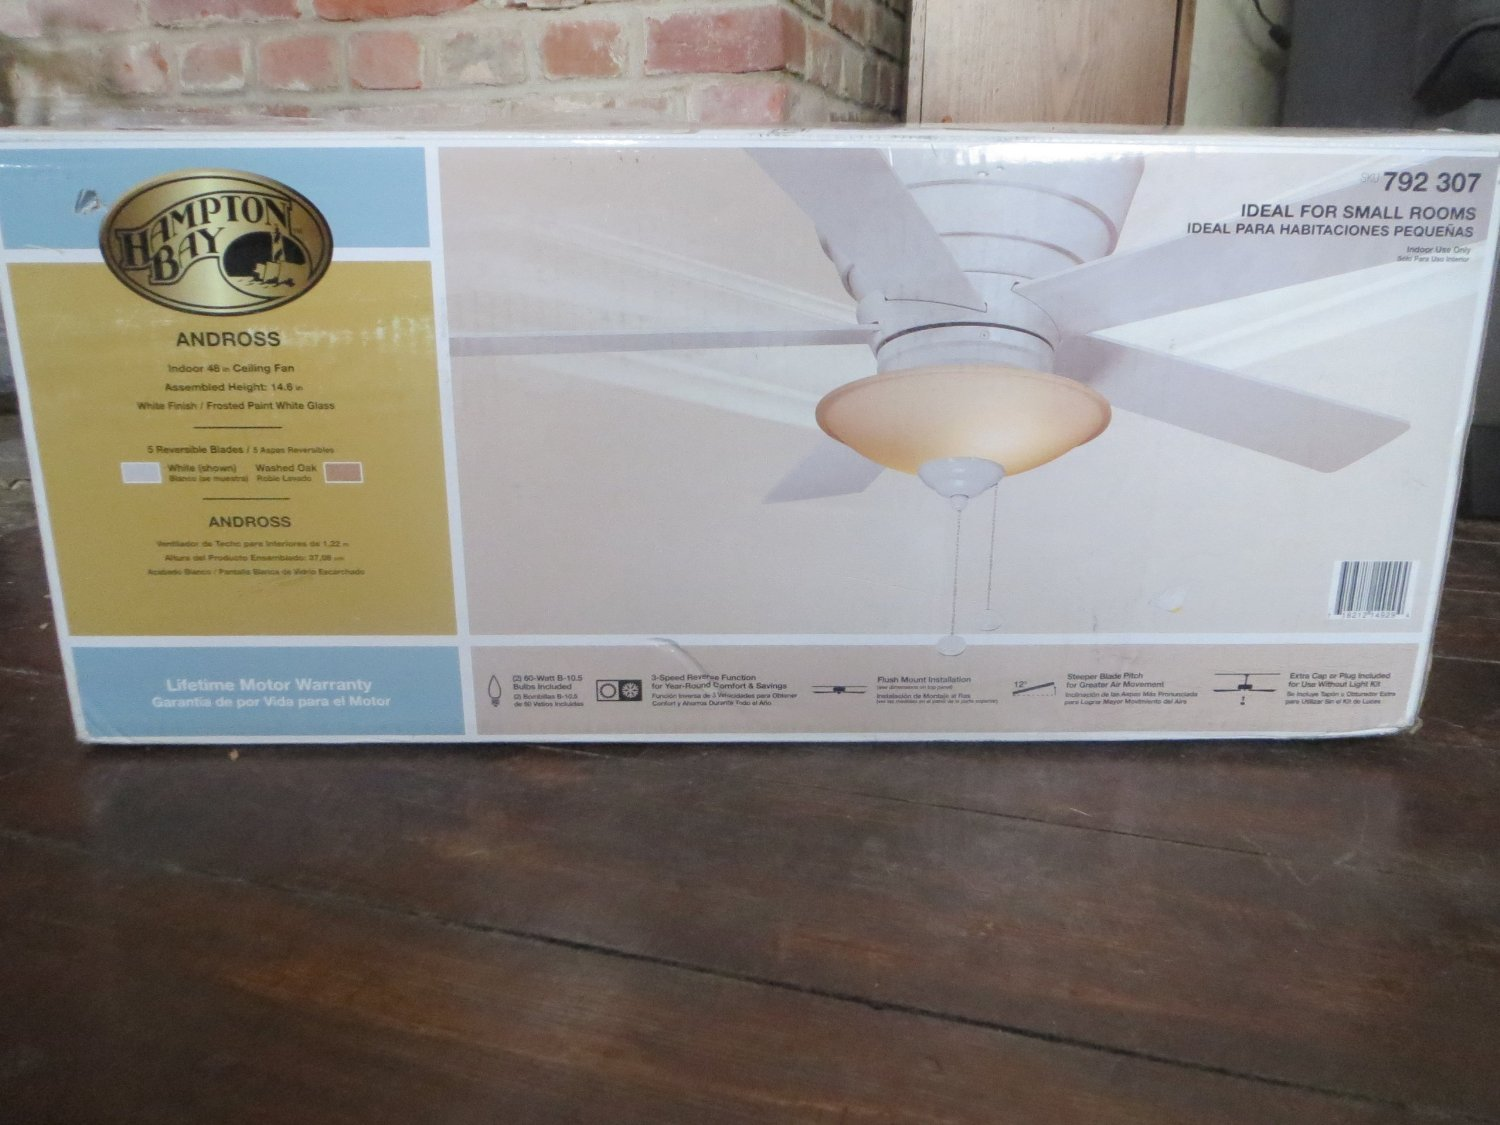 Cheap hampton bay ceiling fan white find hampton bay ceiling fan get quotations hampton bay andross 48 in white ceiling fan aloadofball Image collections